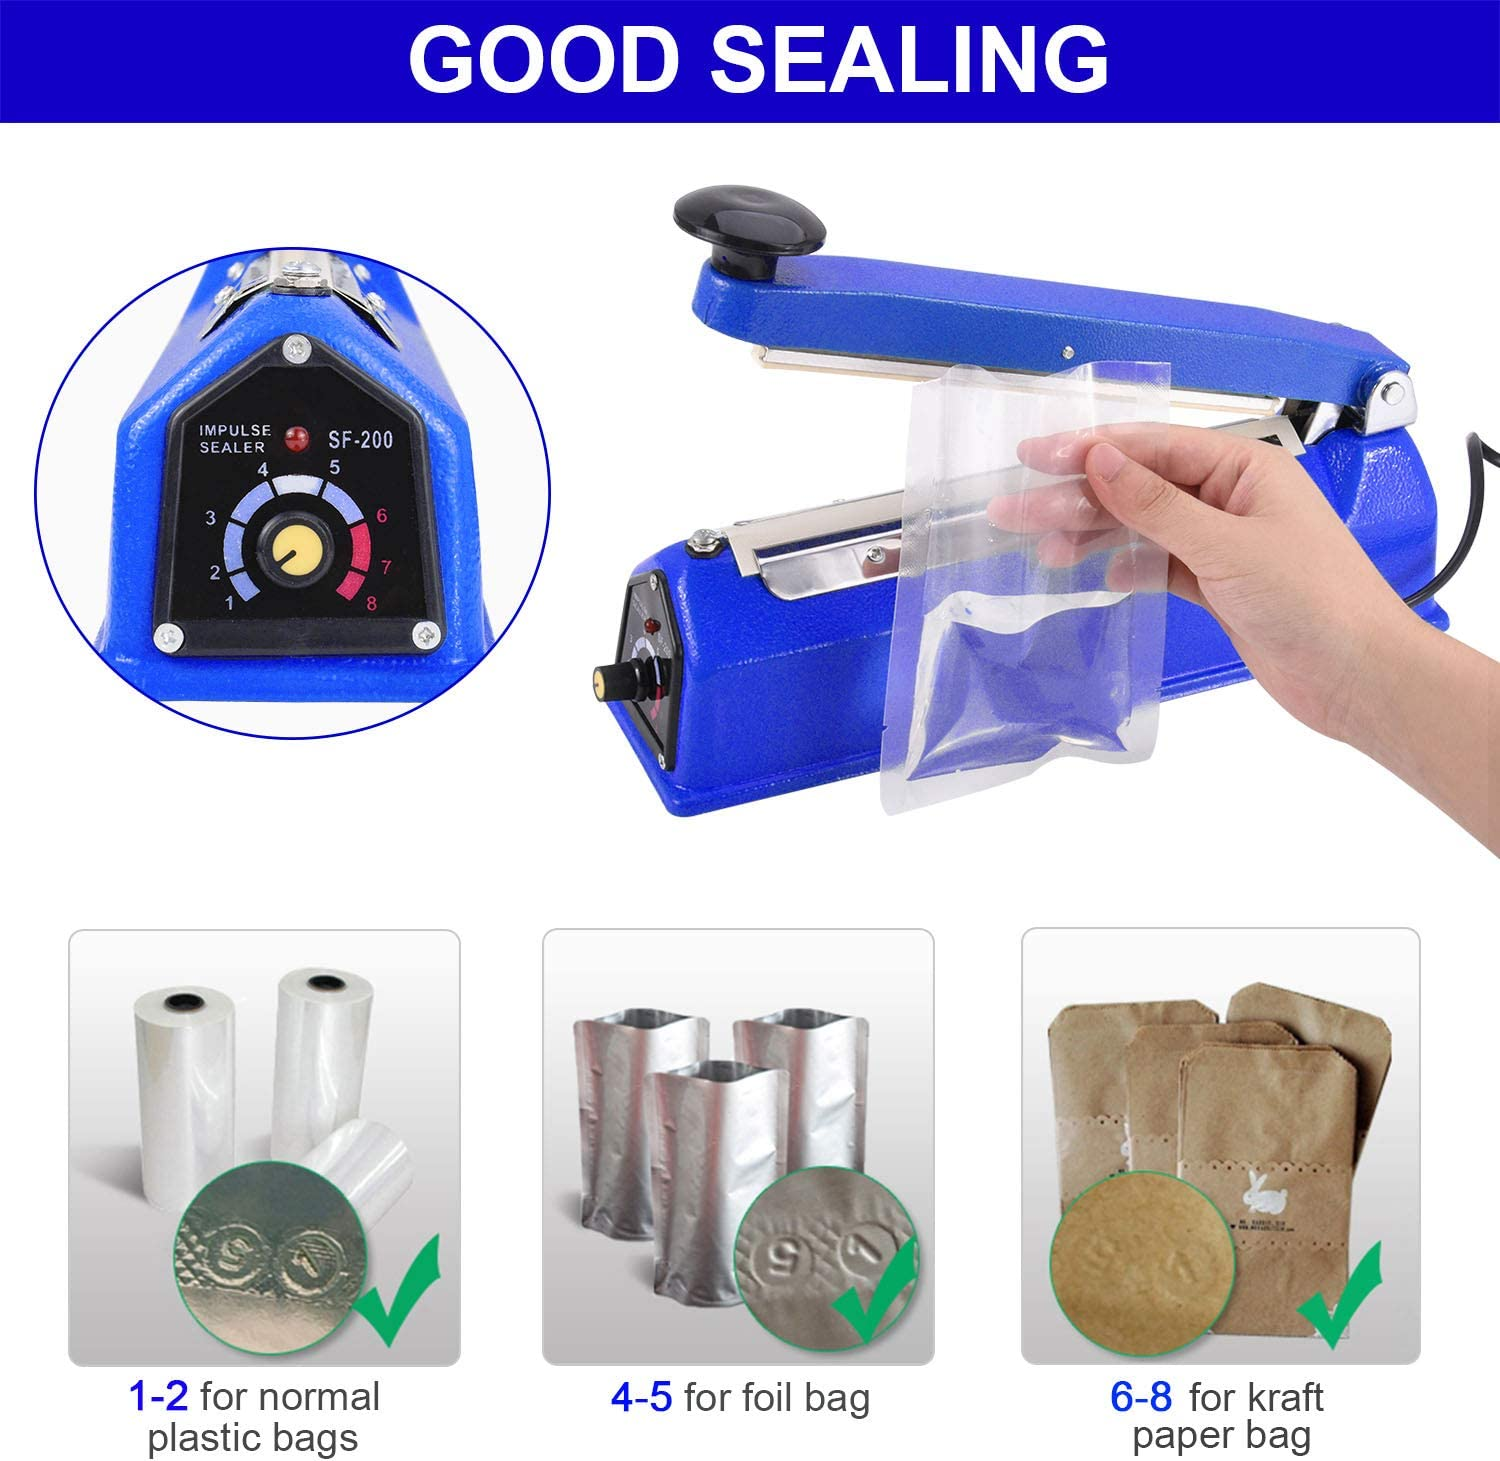 Suteck 8 inch Impulse Bag Sealer Sapphire Manual Poly Bag Sealing Machine w//Adjustable Timer Electric Heat Seal Closer with 50Pcs 4X6 Inch Shrink Wrap Bag and 2 Free Replacement Kit